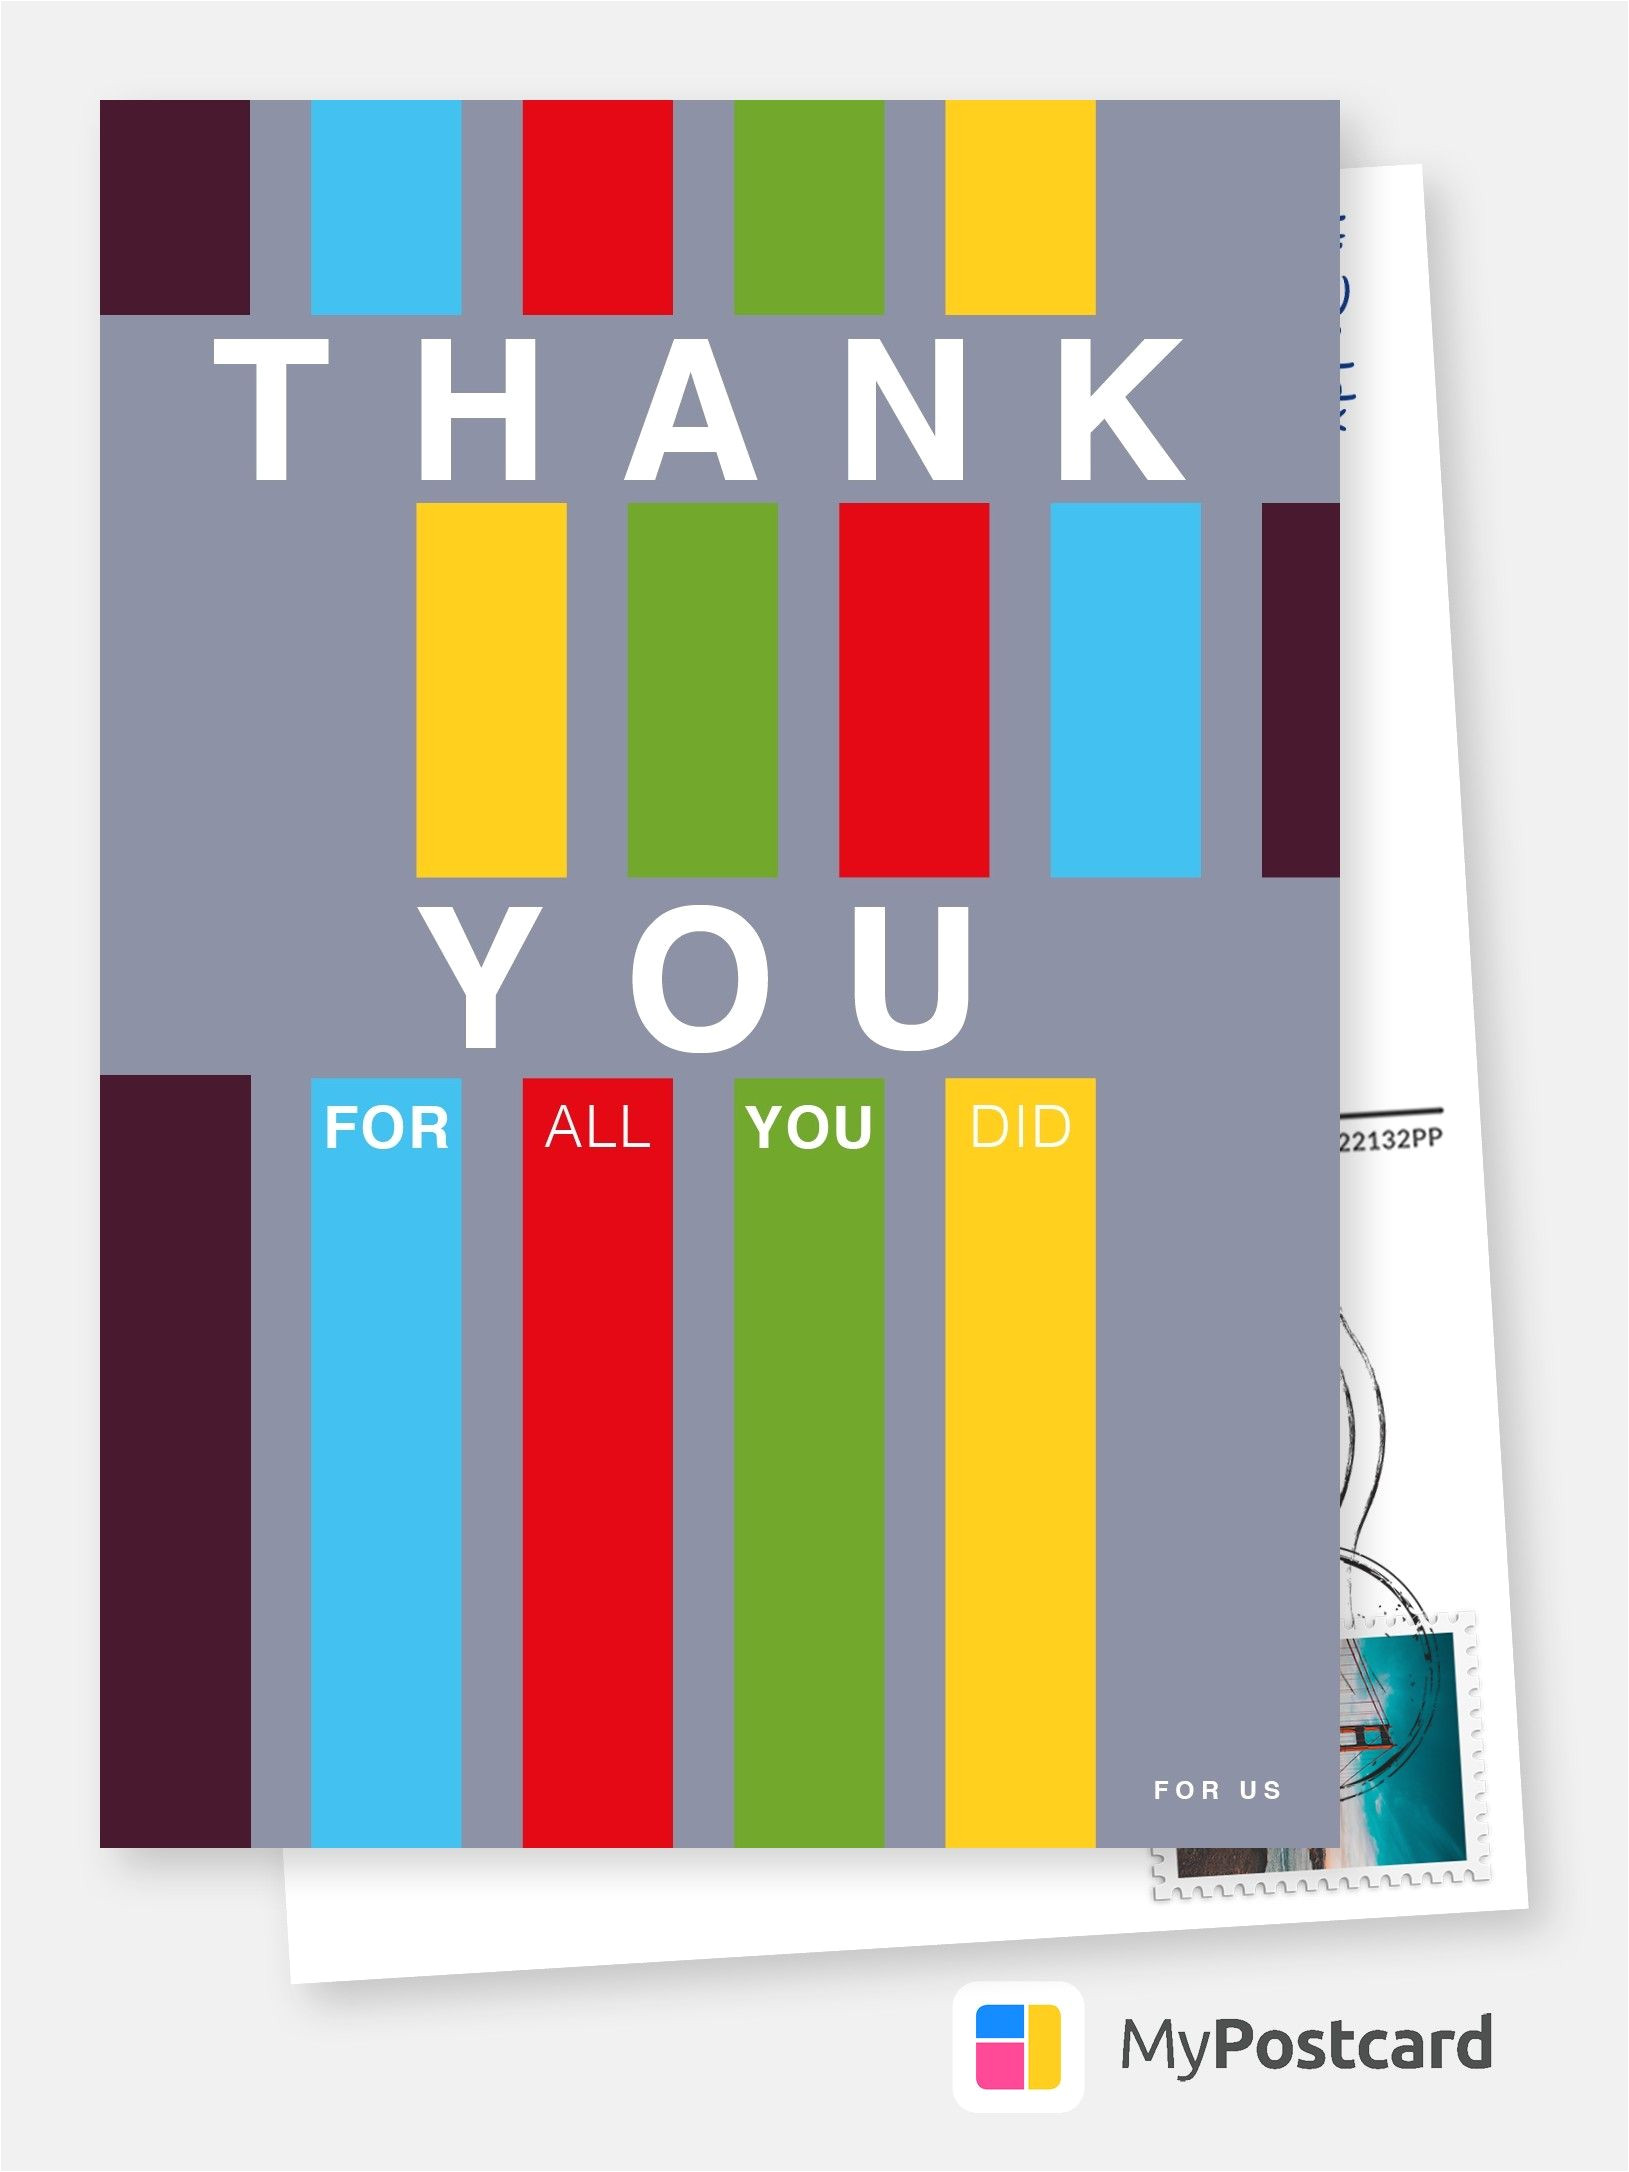 Thank You Quotes for A Card Thank You for All You Did Ermutigungskarten Spruche